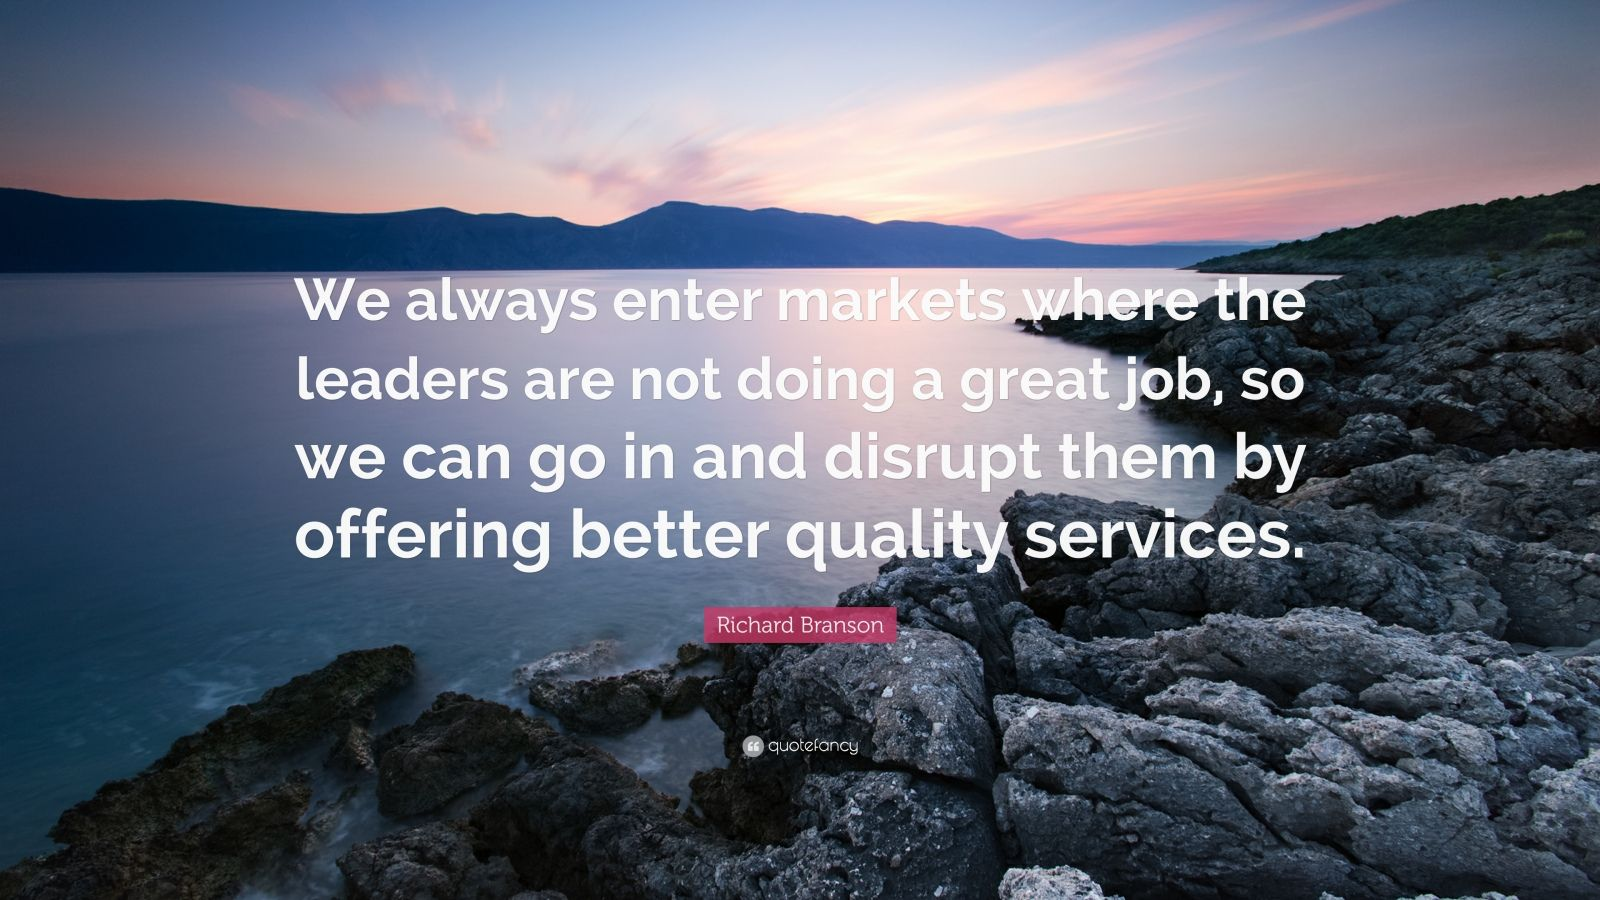 """Richard Branson Quote: """"We always enter markets where the leaders are not doing a great job, so we can go in and disrupt them by offering better quality services."""""""